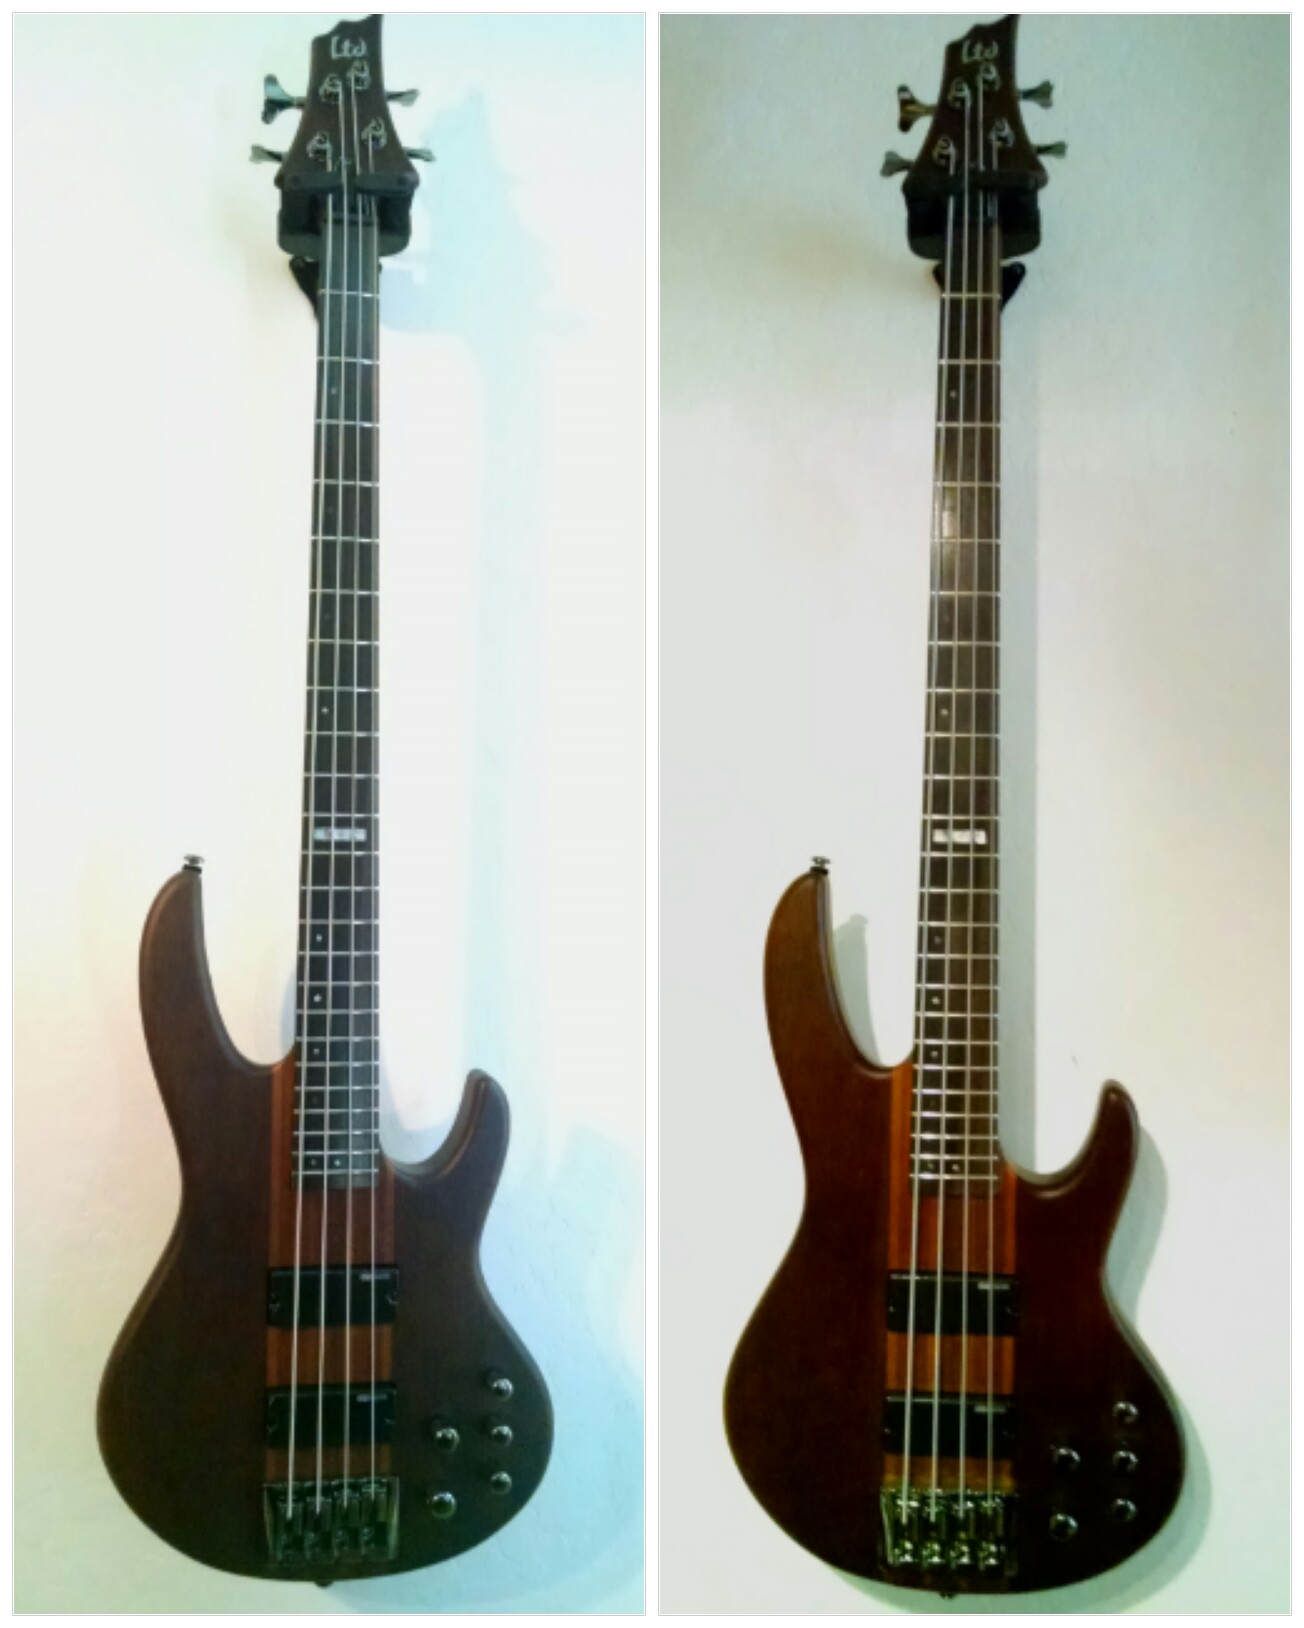 I LOVE THIS BASS!